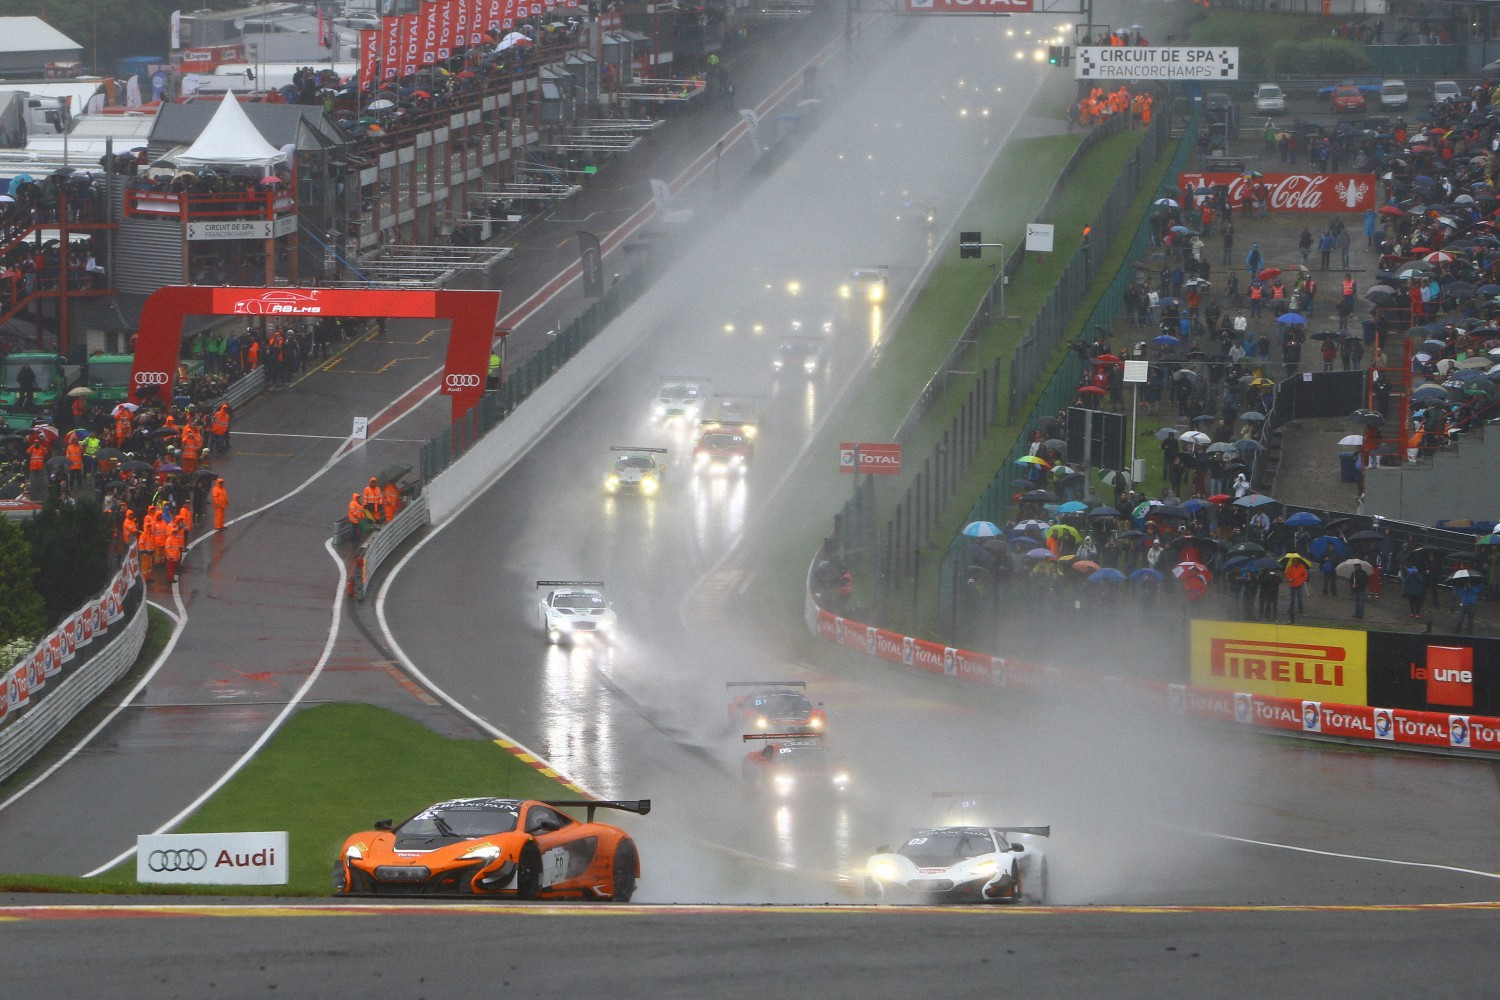 Race update after 1 hour : Wet start to the 2015 Total 24 Hours of Spa